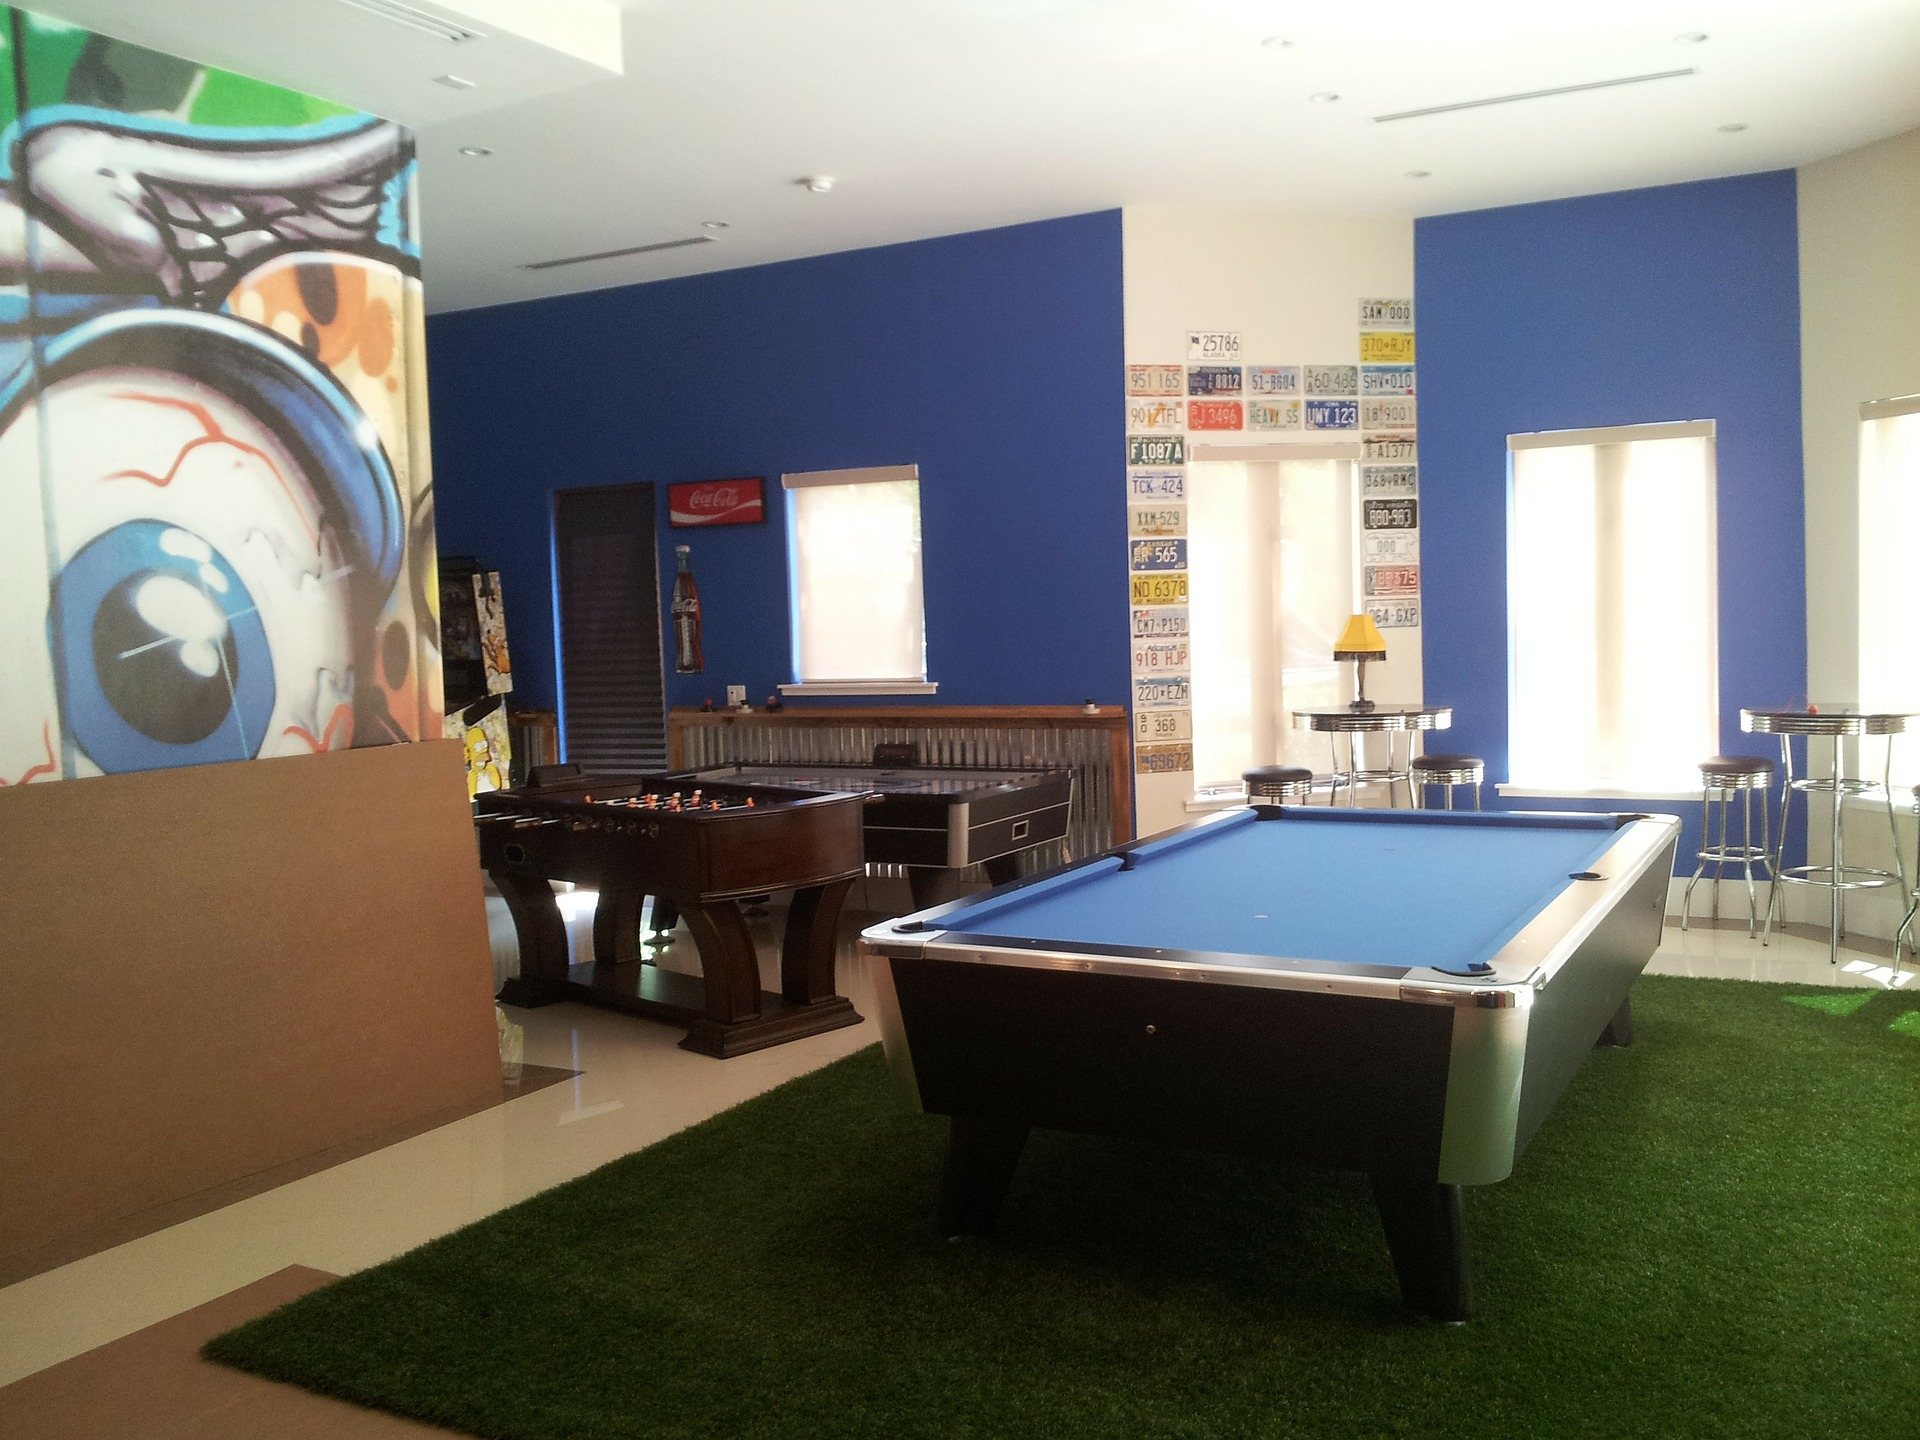 Game room 259397 1920